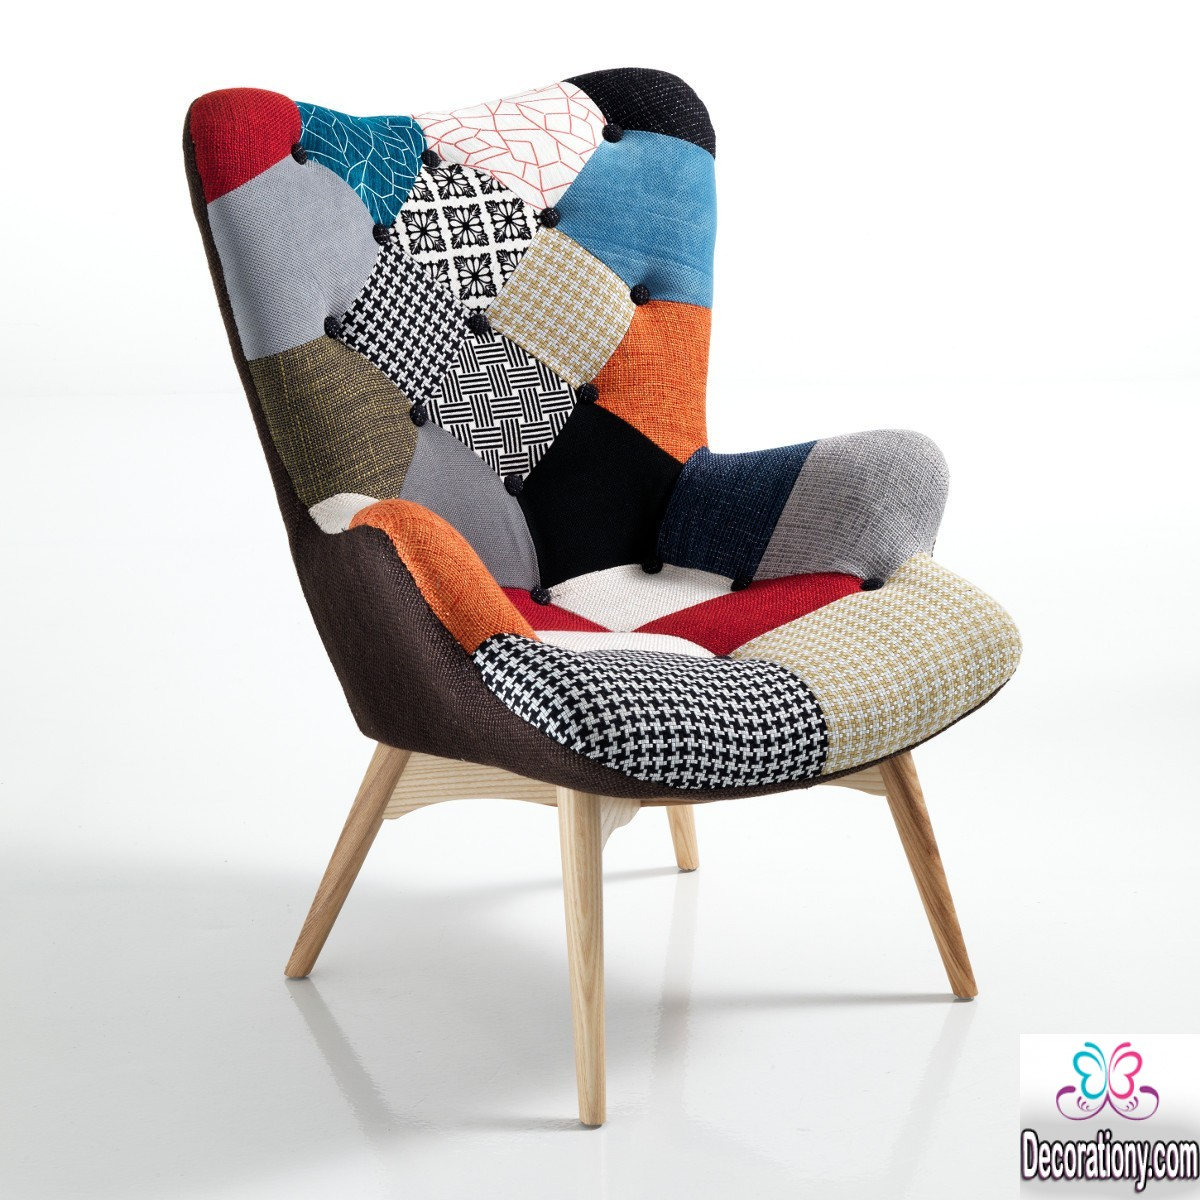 Creative patchwork chair design for the living room for Sitting room chairs designs